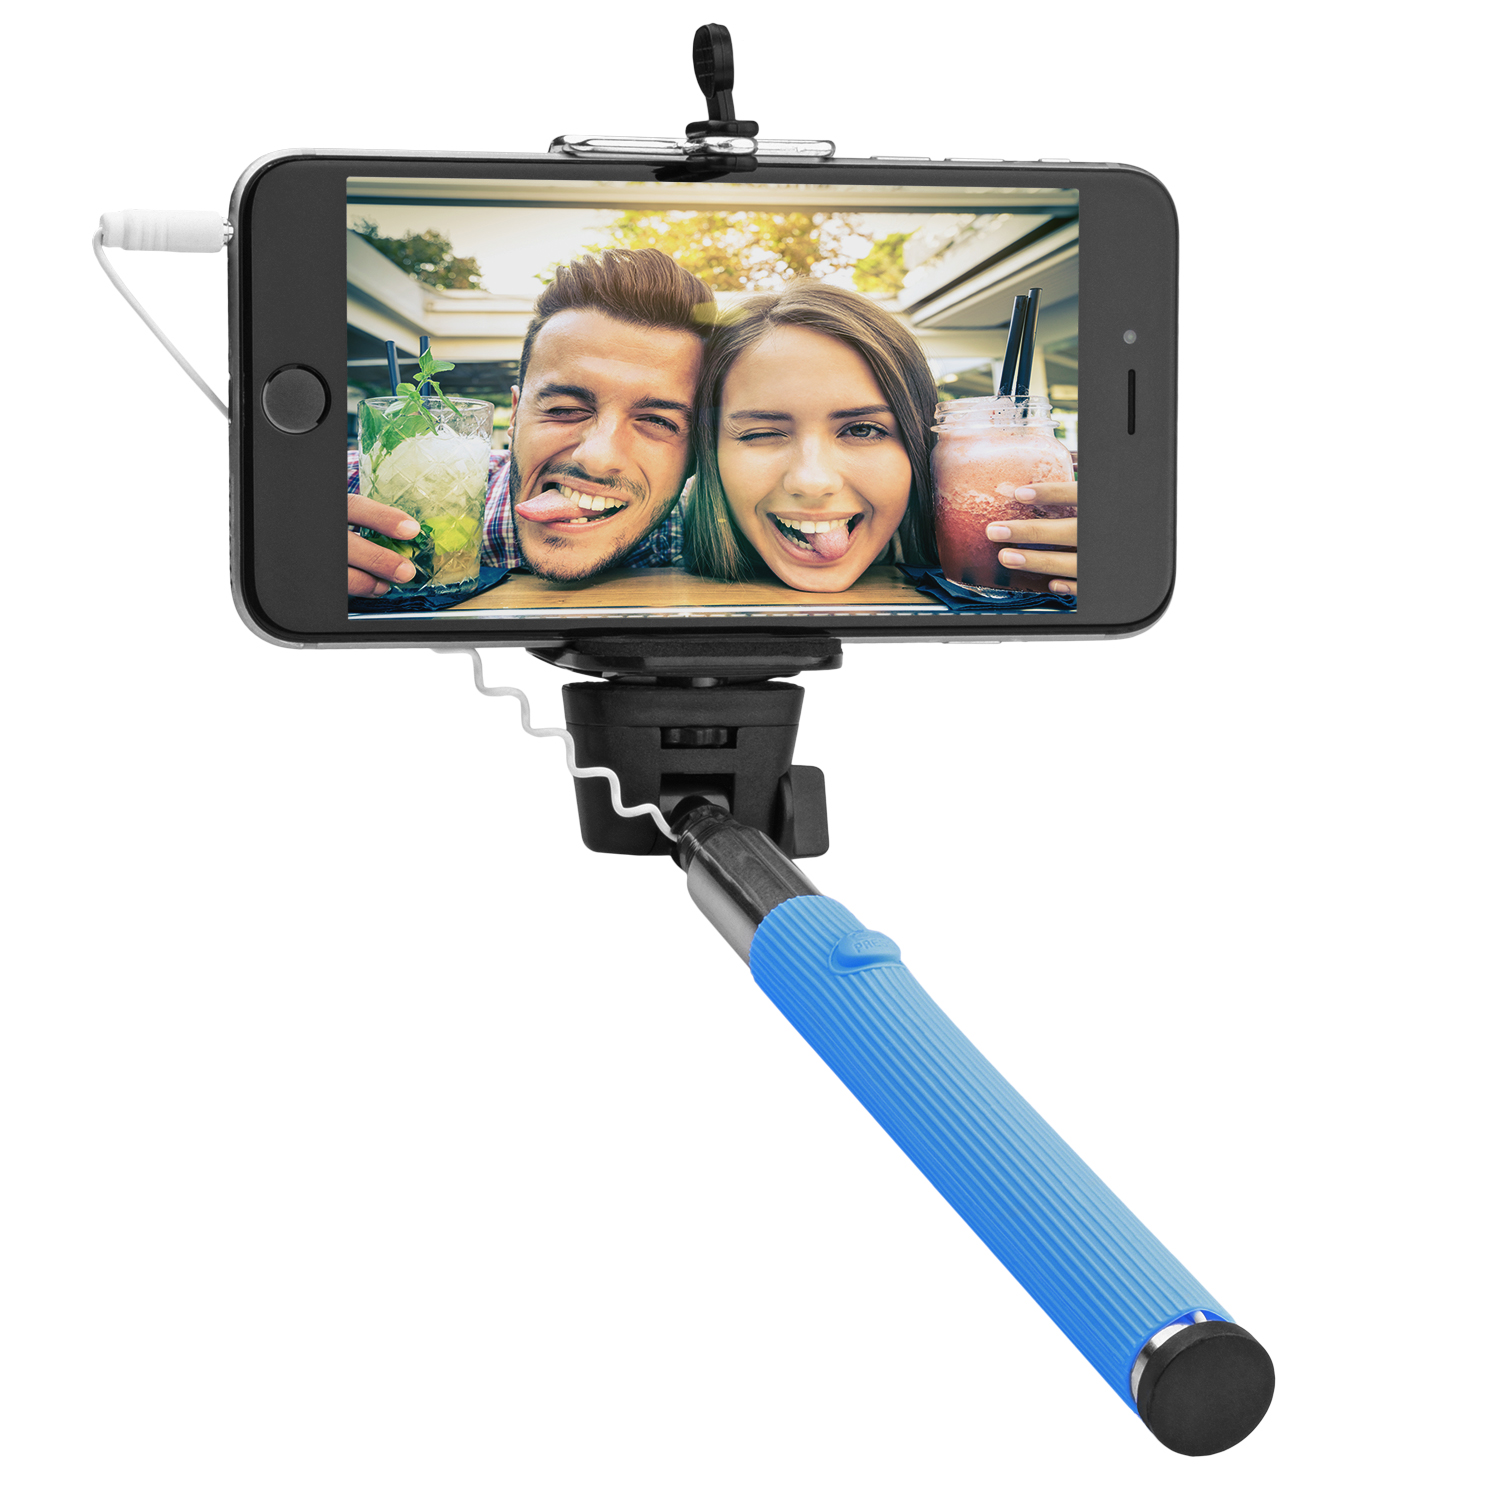 Image for Circuit City Cable Selfie Stick For All Ios And Android Smart Phones - Blue from Circuit City